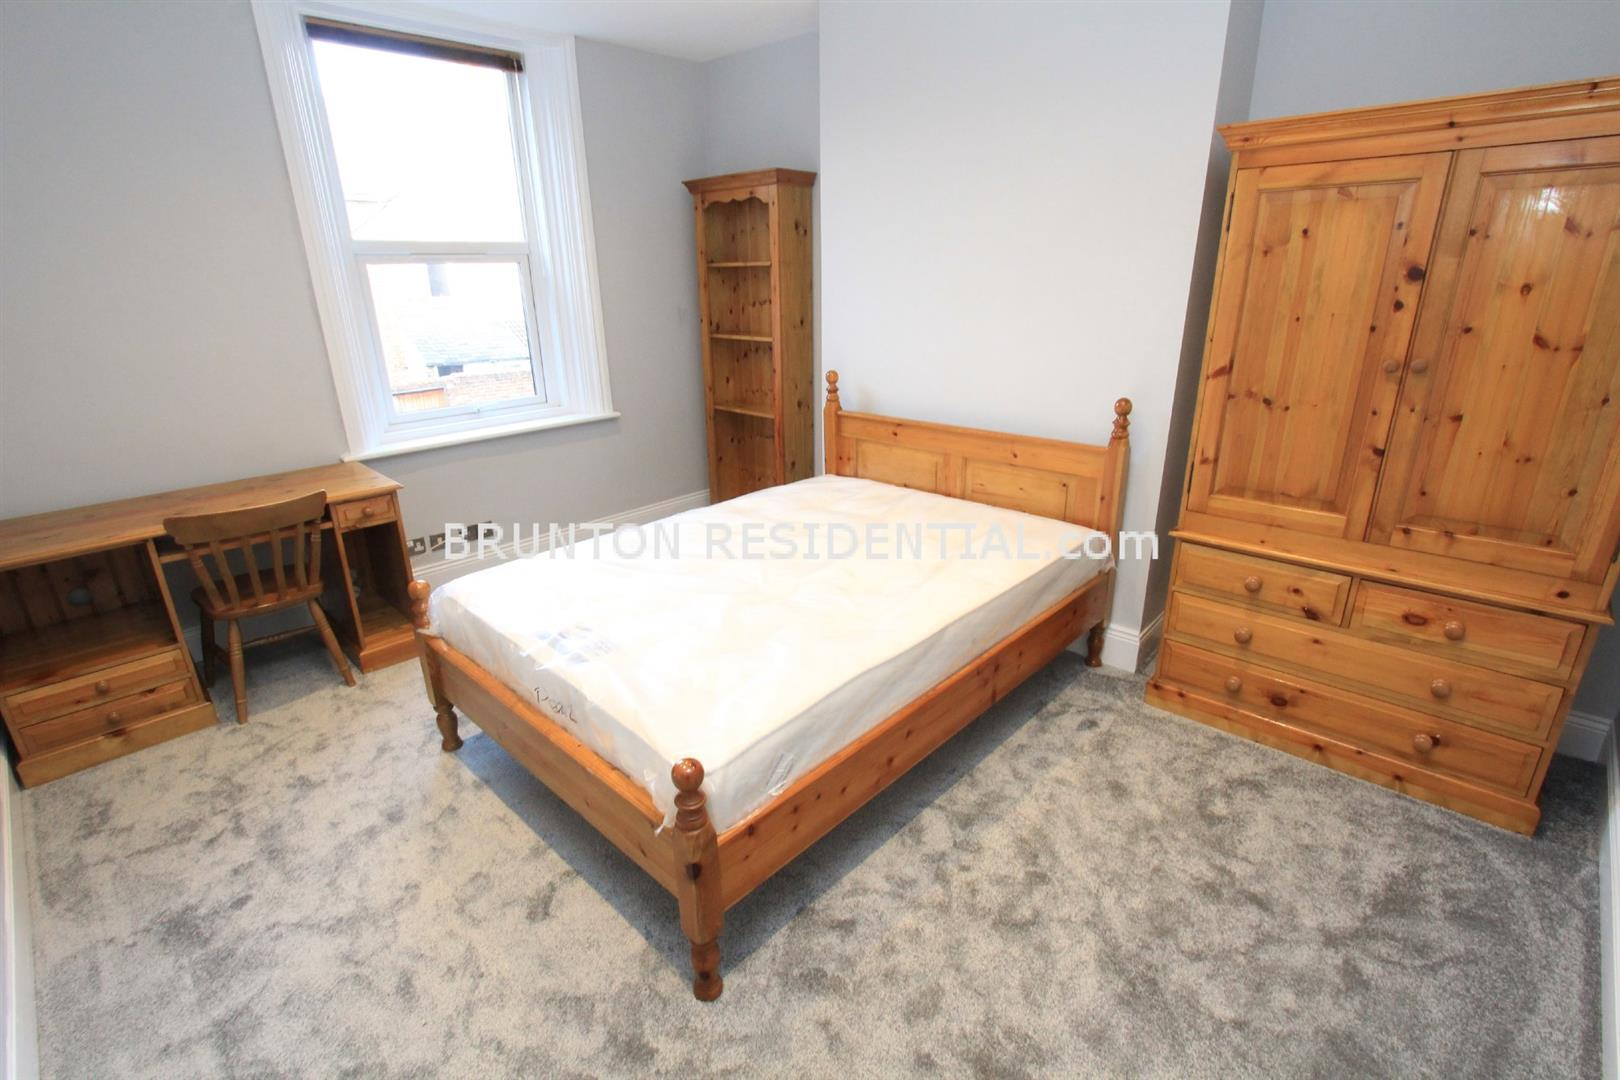 1 bed house share to rent in Newcastle Upon Tyne, NE6 5HU 0